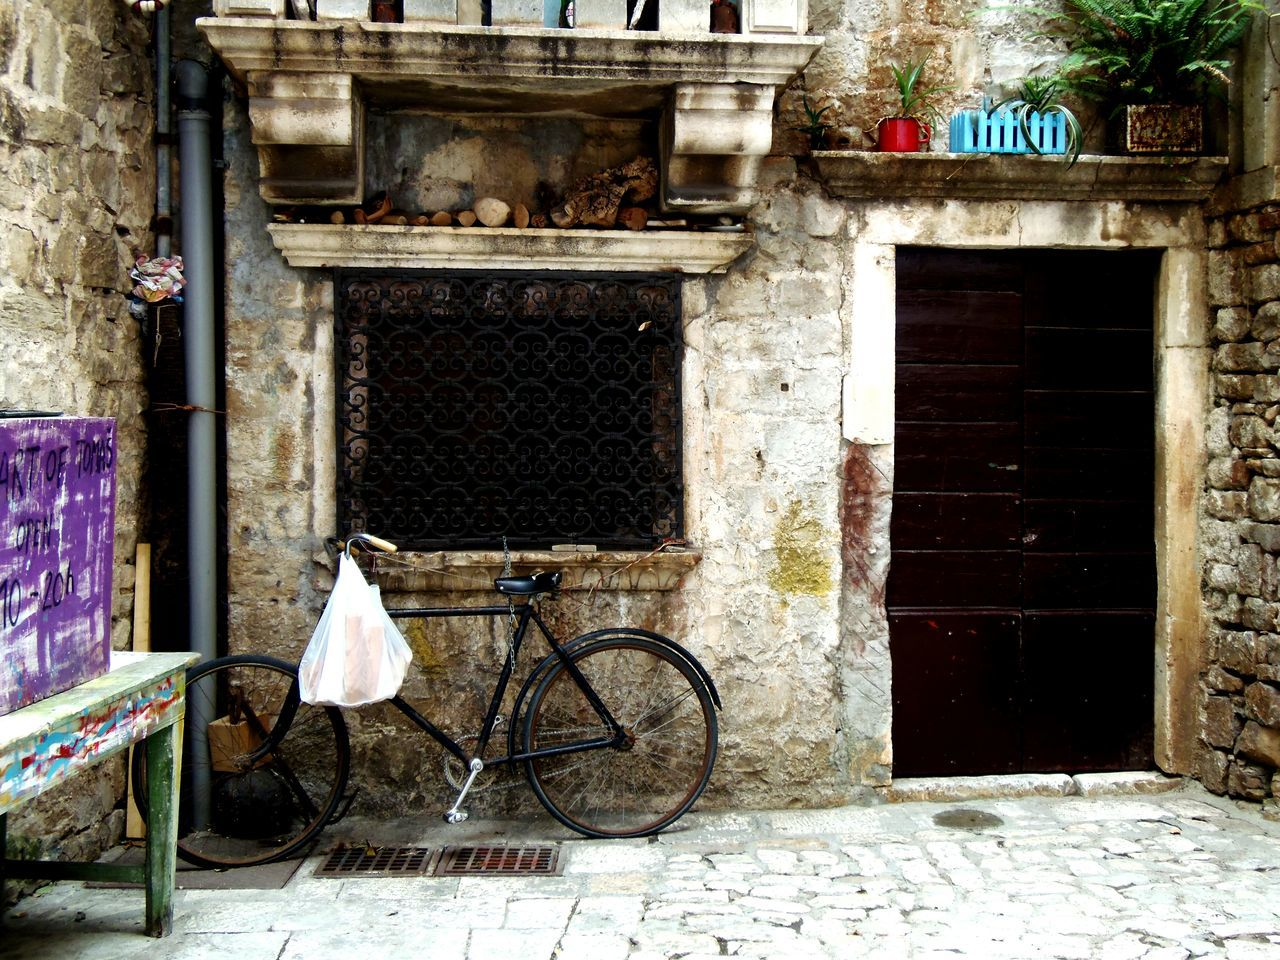 Bicycle Architecture Mode Of Transport Outdoors Building Exterior No People Built Structure Day Croatia ❤